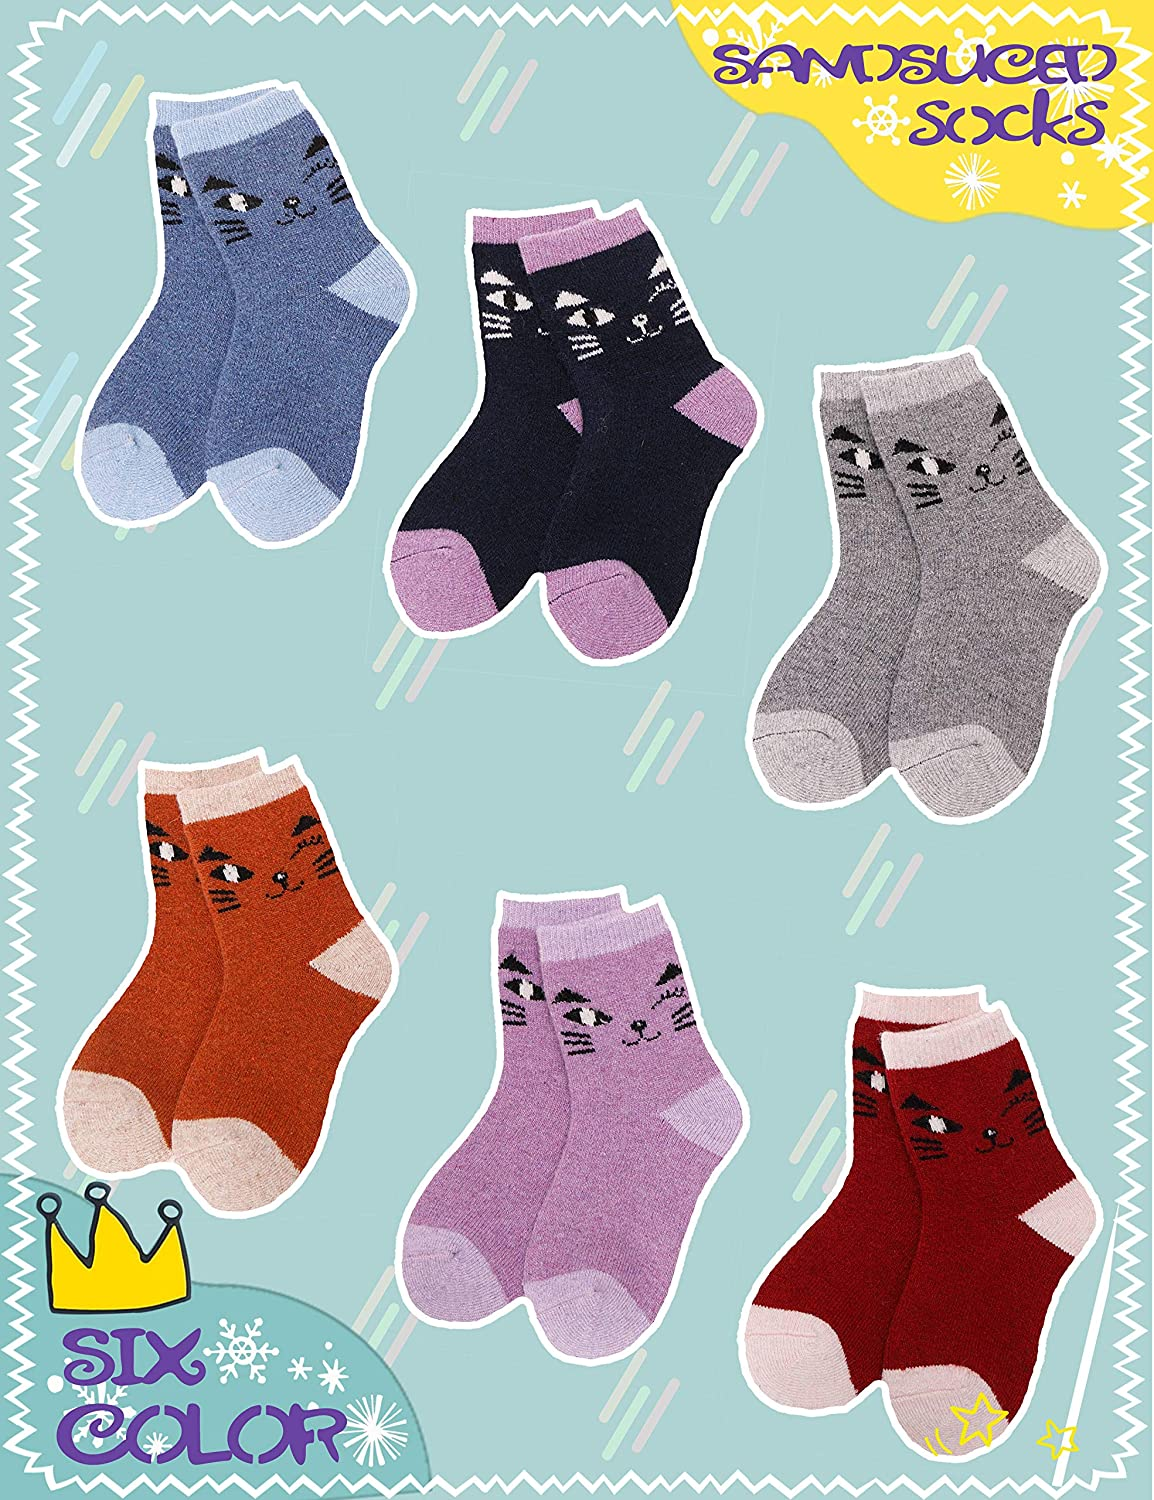 Boys Girls Wool Socks Warm Thick Thermal Cotton Winter Crew Socks For Child Kid Toddlers 6 Pack